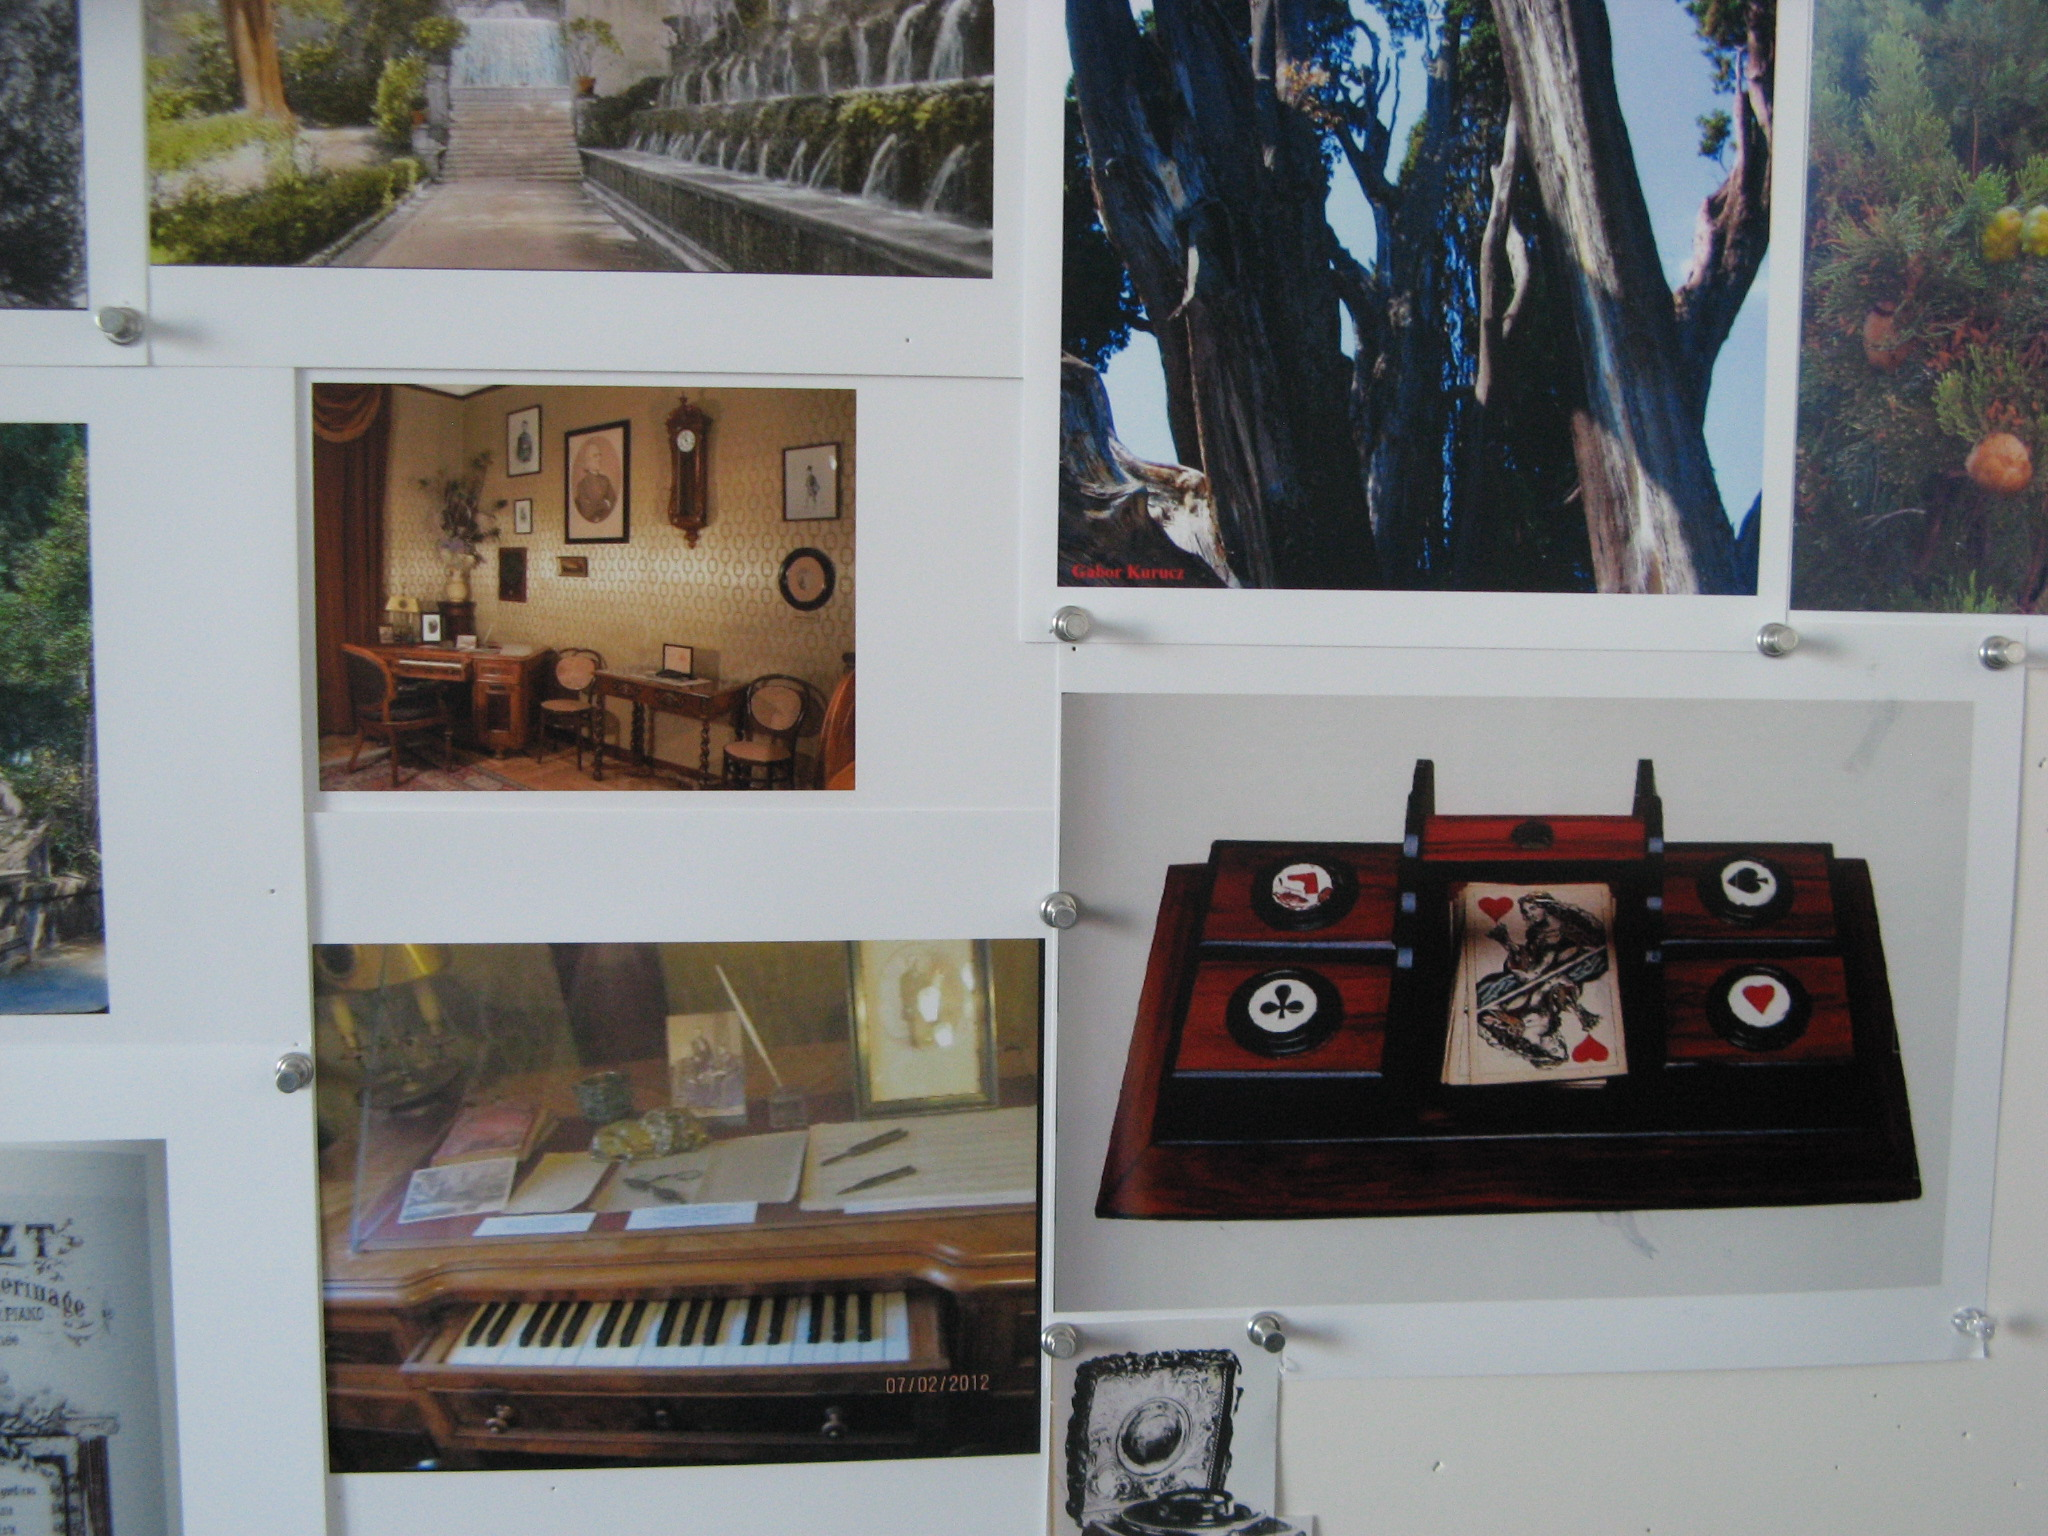 liszt composition desk, cards and inkwell.JPG